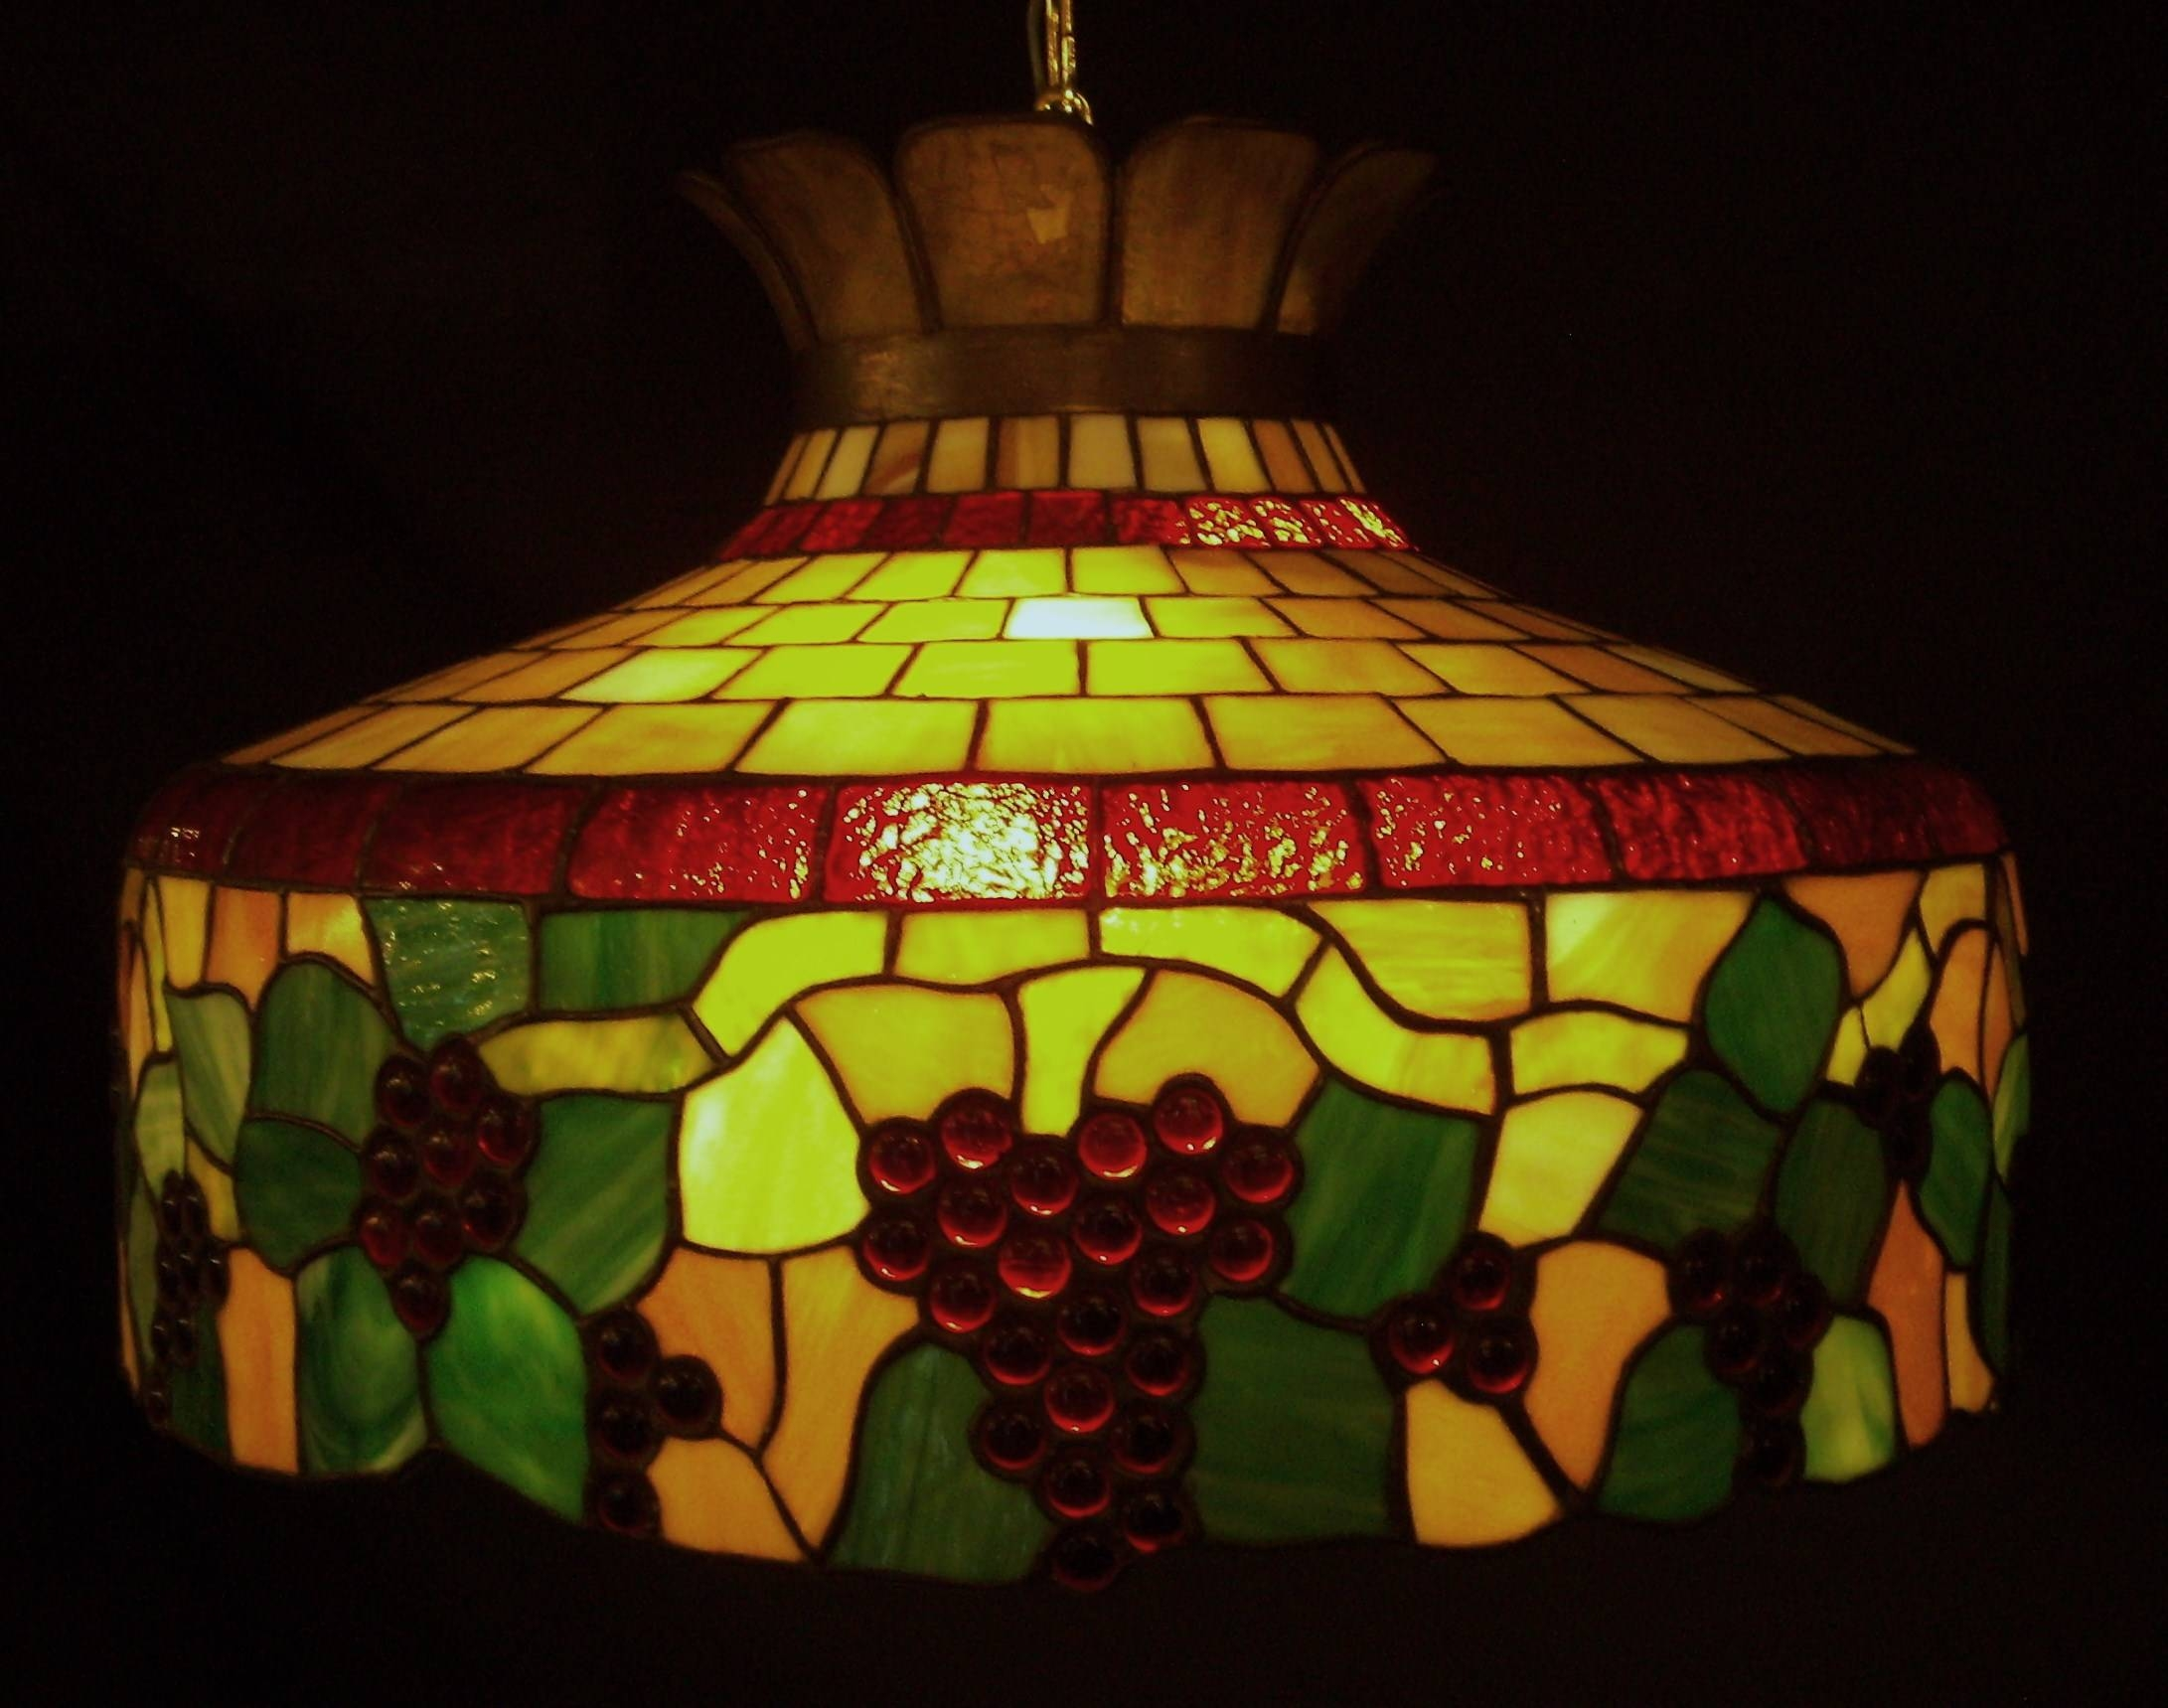 Lighting: Lamp Shades On Pinterest With Stained Glass Lamps And intended for Stained Glass Lamps Pendant Lights (Image 2 of 15)